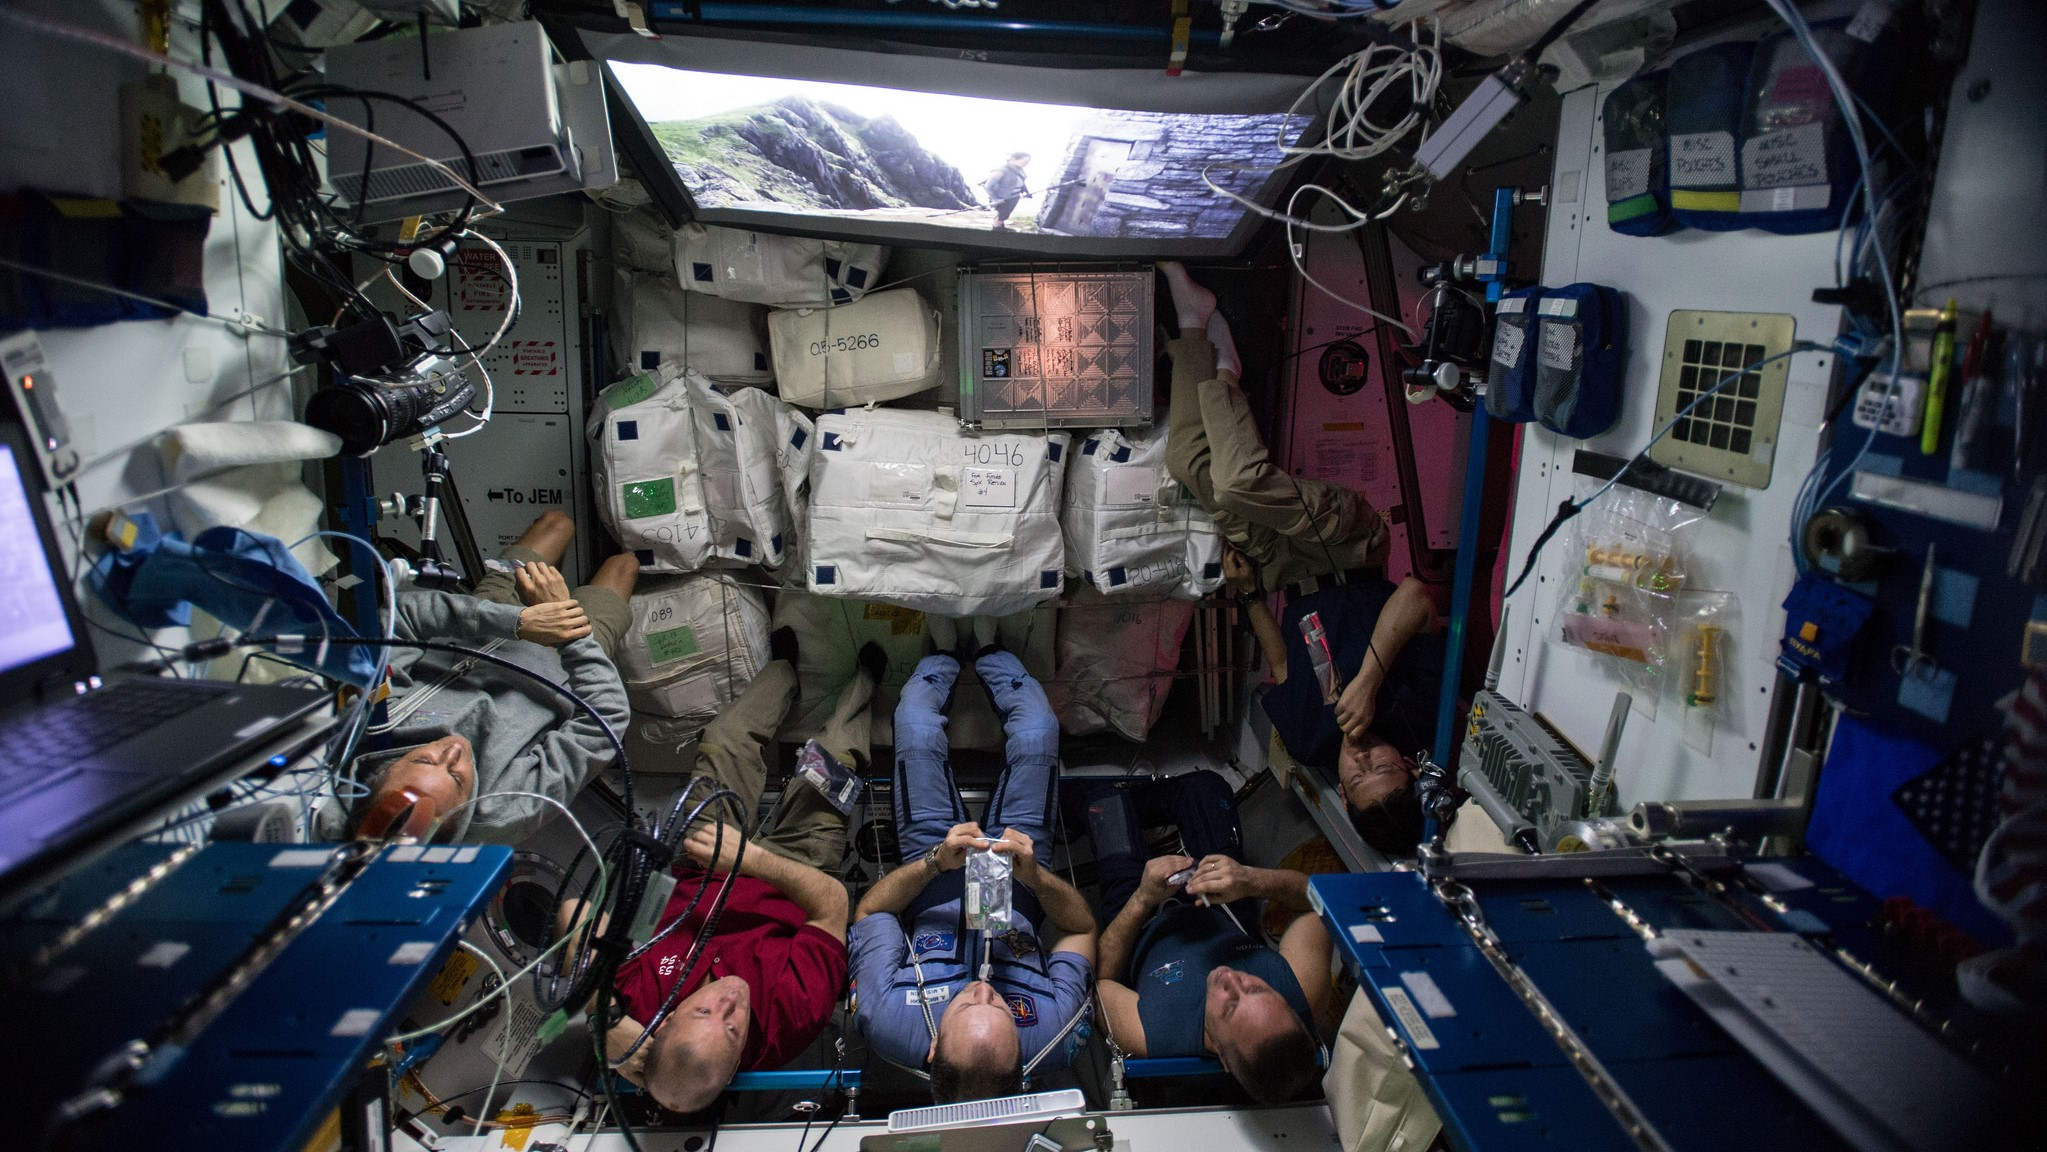 """The Expedition 54 crew watch a special screening of """"Star Wars: The Last Jedi""""in the station's Harmony module. Credit: NASA"""